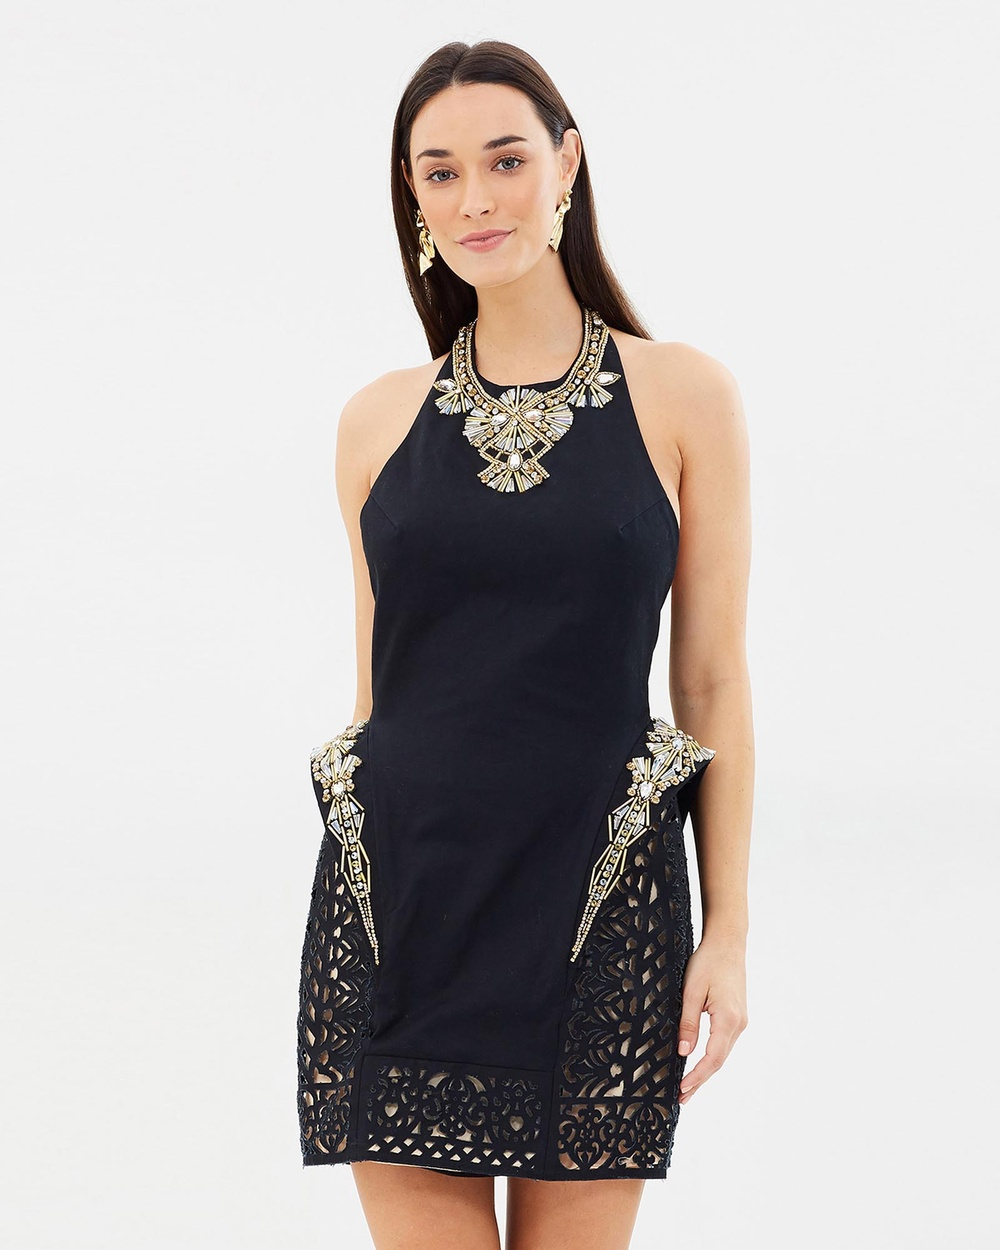 ROXCIIS Astra Laser Cut Dress Bodycon Dresses Black Astra Laser Cut Dress